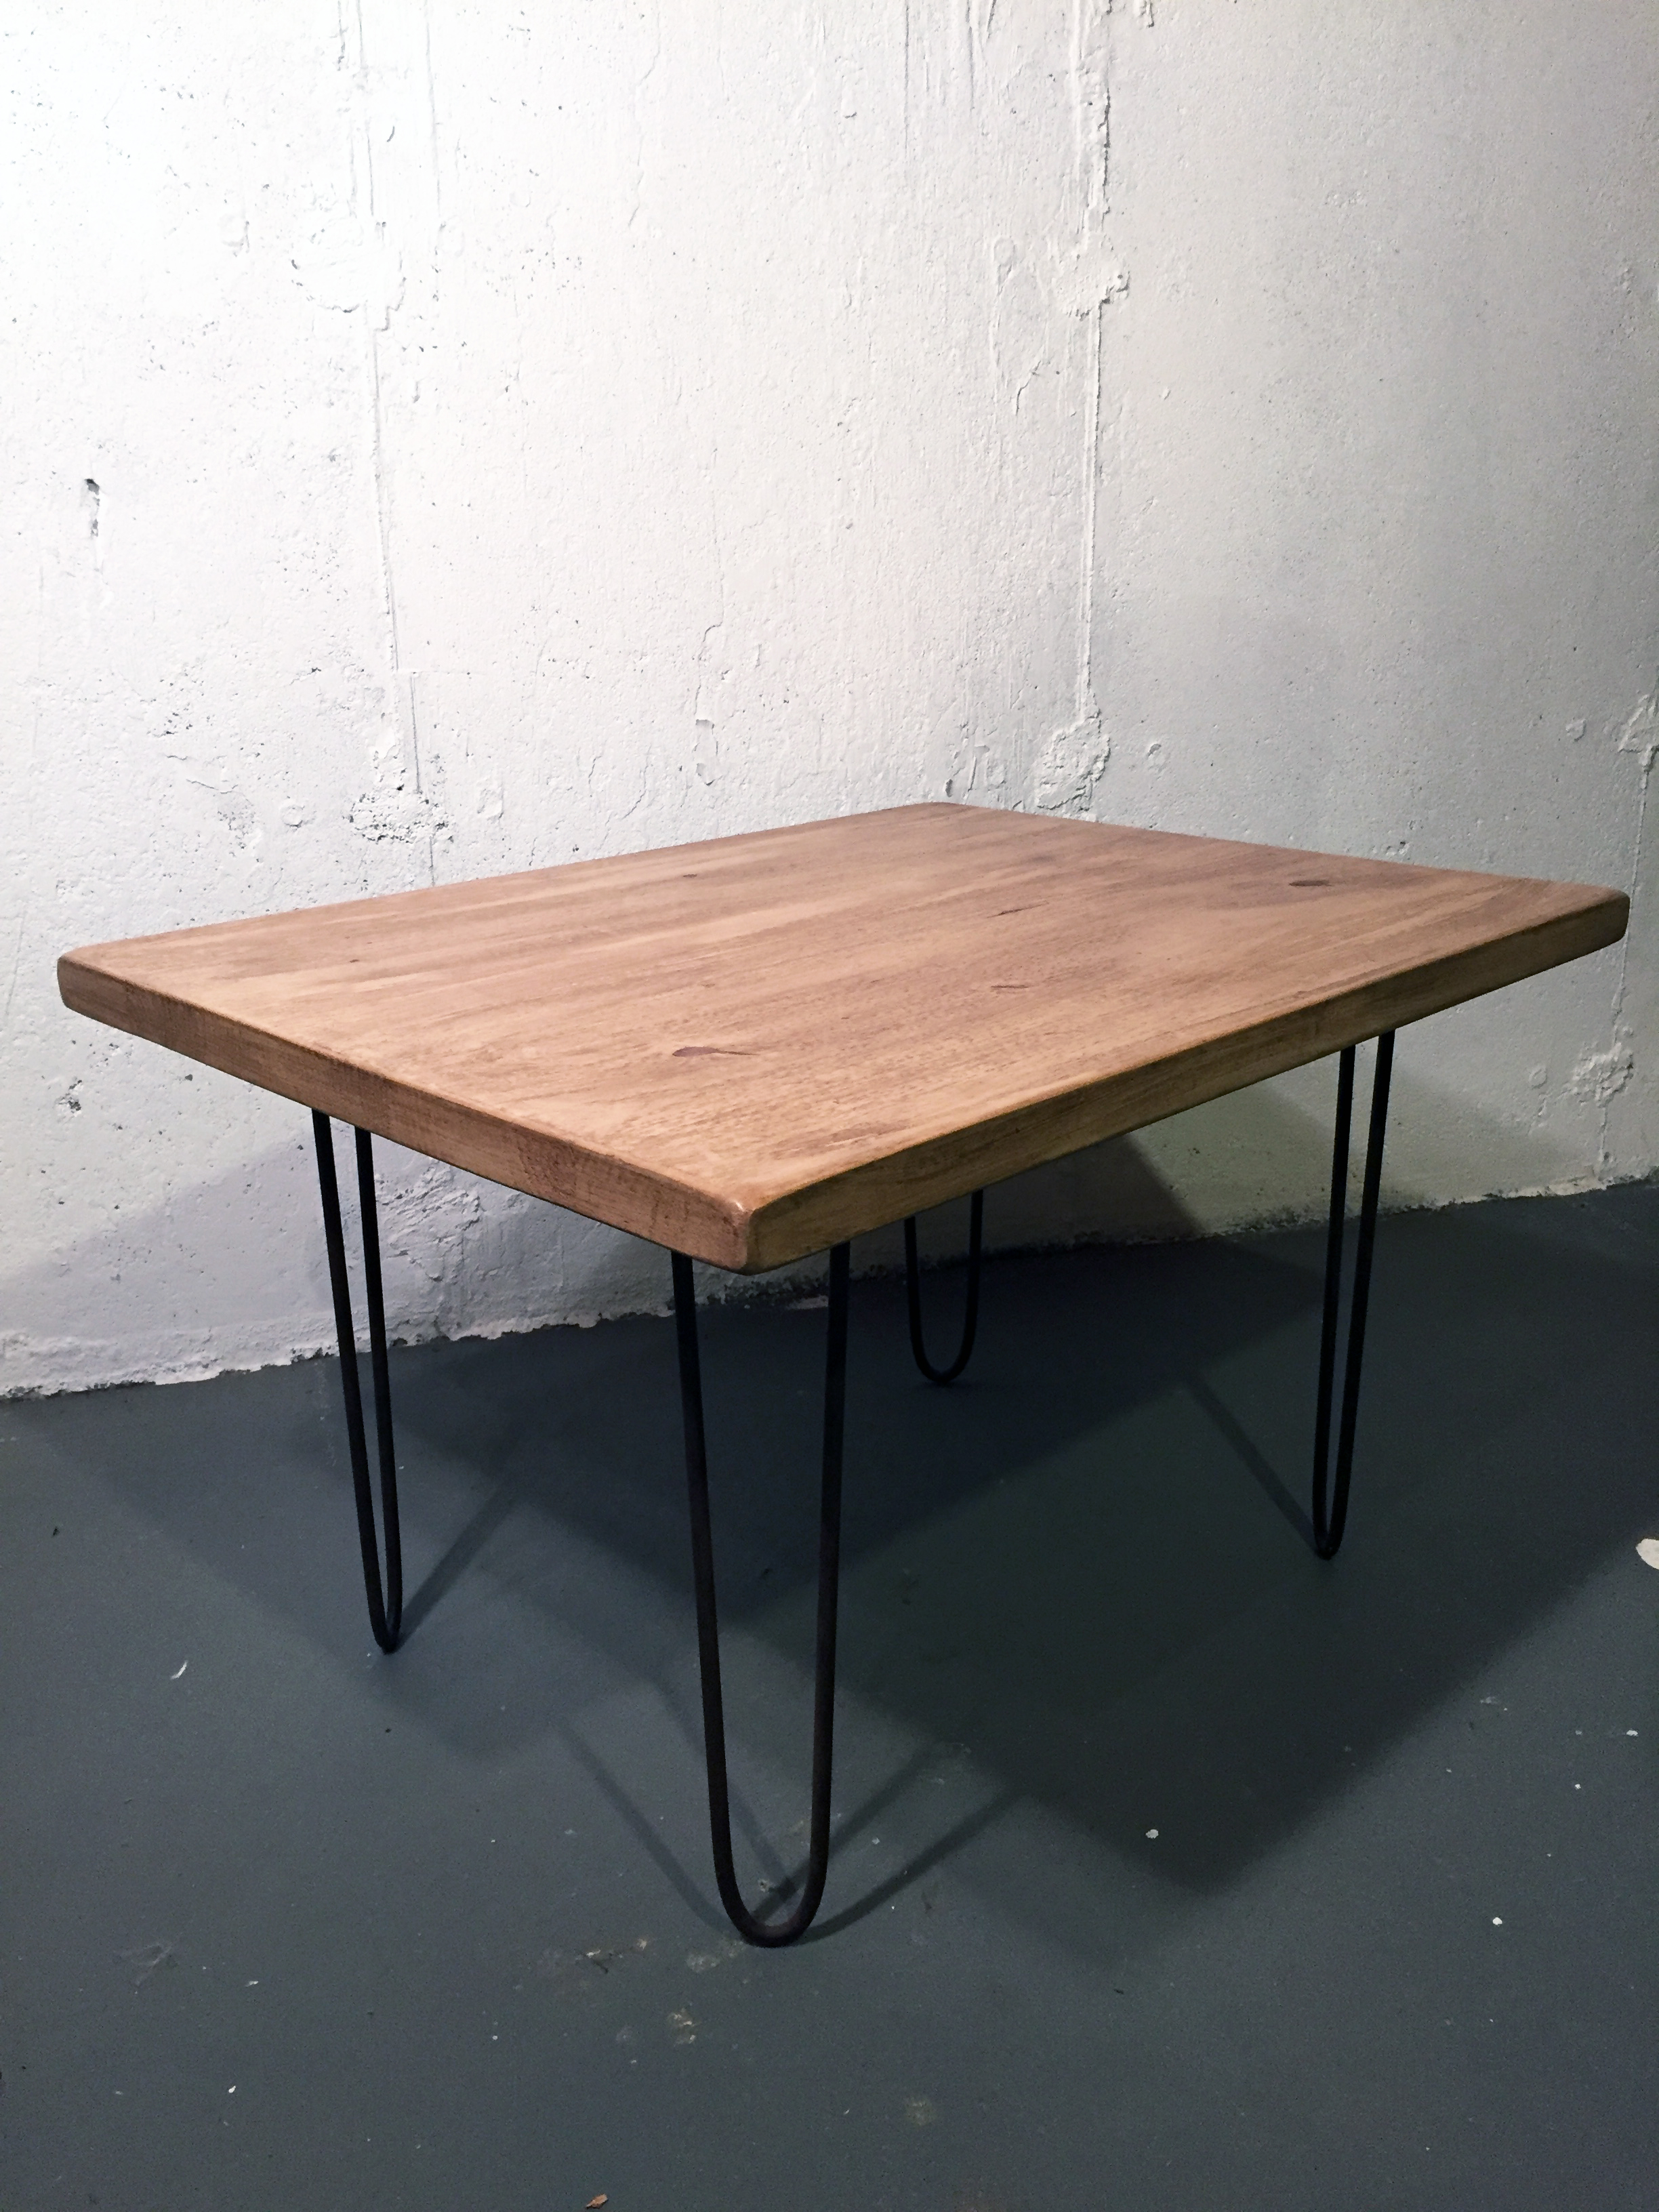 Repurposed Wood Coffee Table With Hairpin Legs   Image 6 Of 7